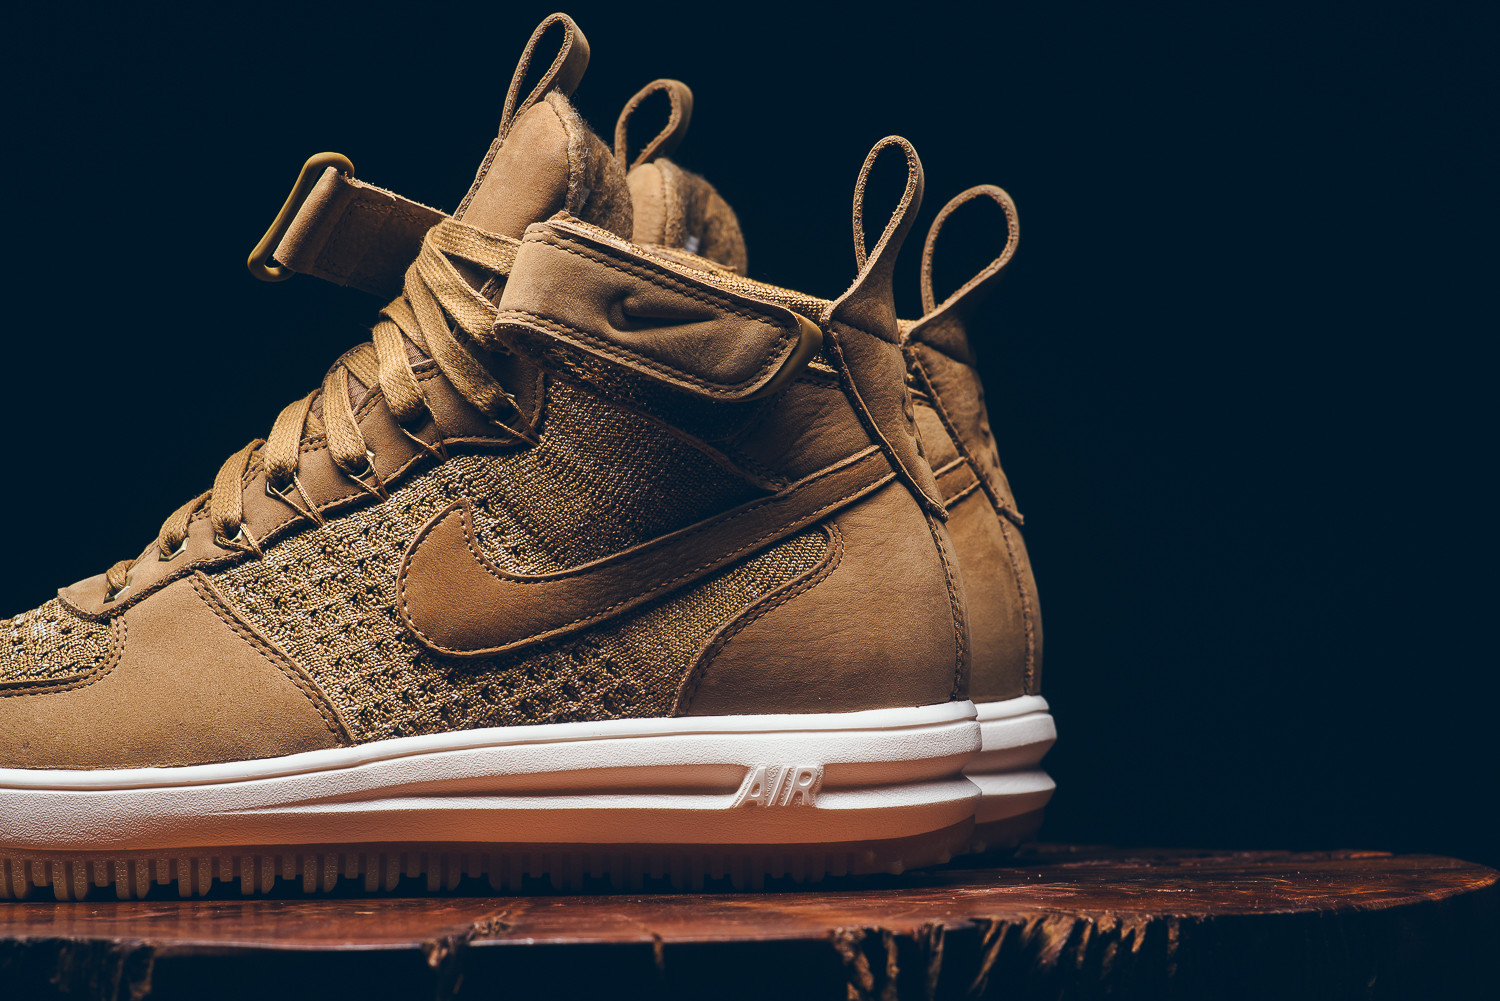 959402e231fb Nike Lunar Force 1 Flyknit Workboot Color  Golden Beige Sail-Olive Flak  Style  855984-200. Release Date  11 03 2016. Price   200.00